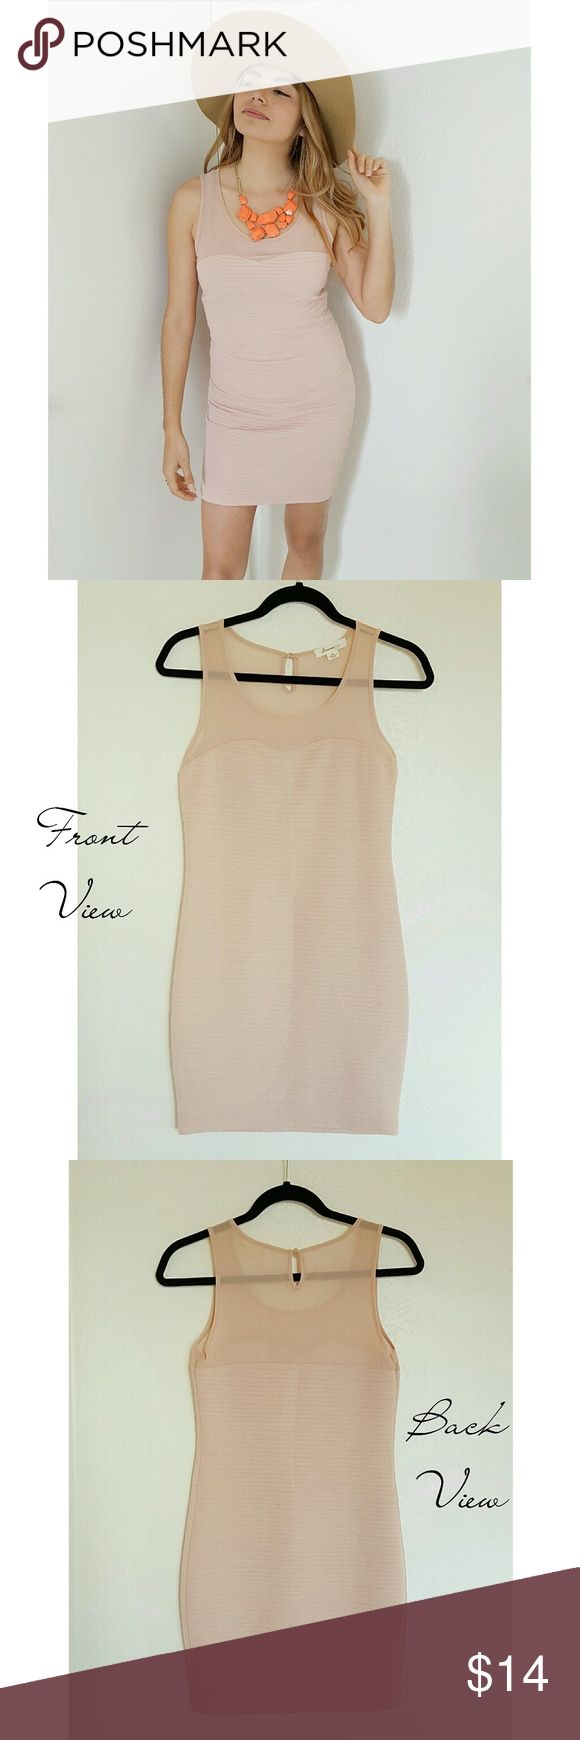 💋2x HP💋Beige Bodycon Dress ~ Elegant nude/beige bodycon dress ~ Excellent neutral tone that looks great on many different skin tones ✌🏻✌✌🏽✌🏿 ~ Sheer across shoulders ~ Worn once to a bridal shower ~ In perfect condition ~ Fits a size X-Small or Small ~ Very figure flattering  🌻 GET THE LOOK: Photo 5 is a style inspo photos. Similar looks; Not exact item.  ❤ LIKE for price drop notifications 👍 Accepting Reasonable OFFERS 🌴 BUNDLE your likes & I'll send you an offer! Forever 21 Dresses…